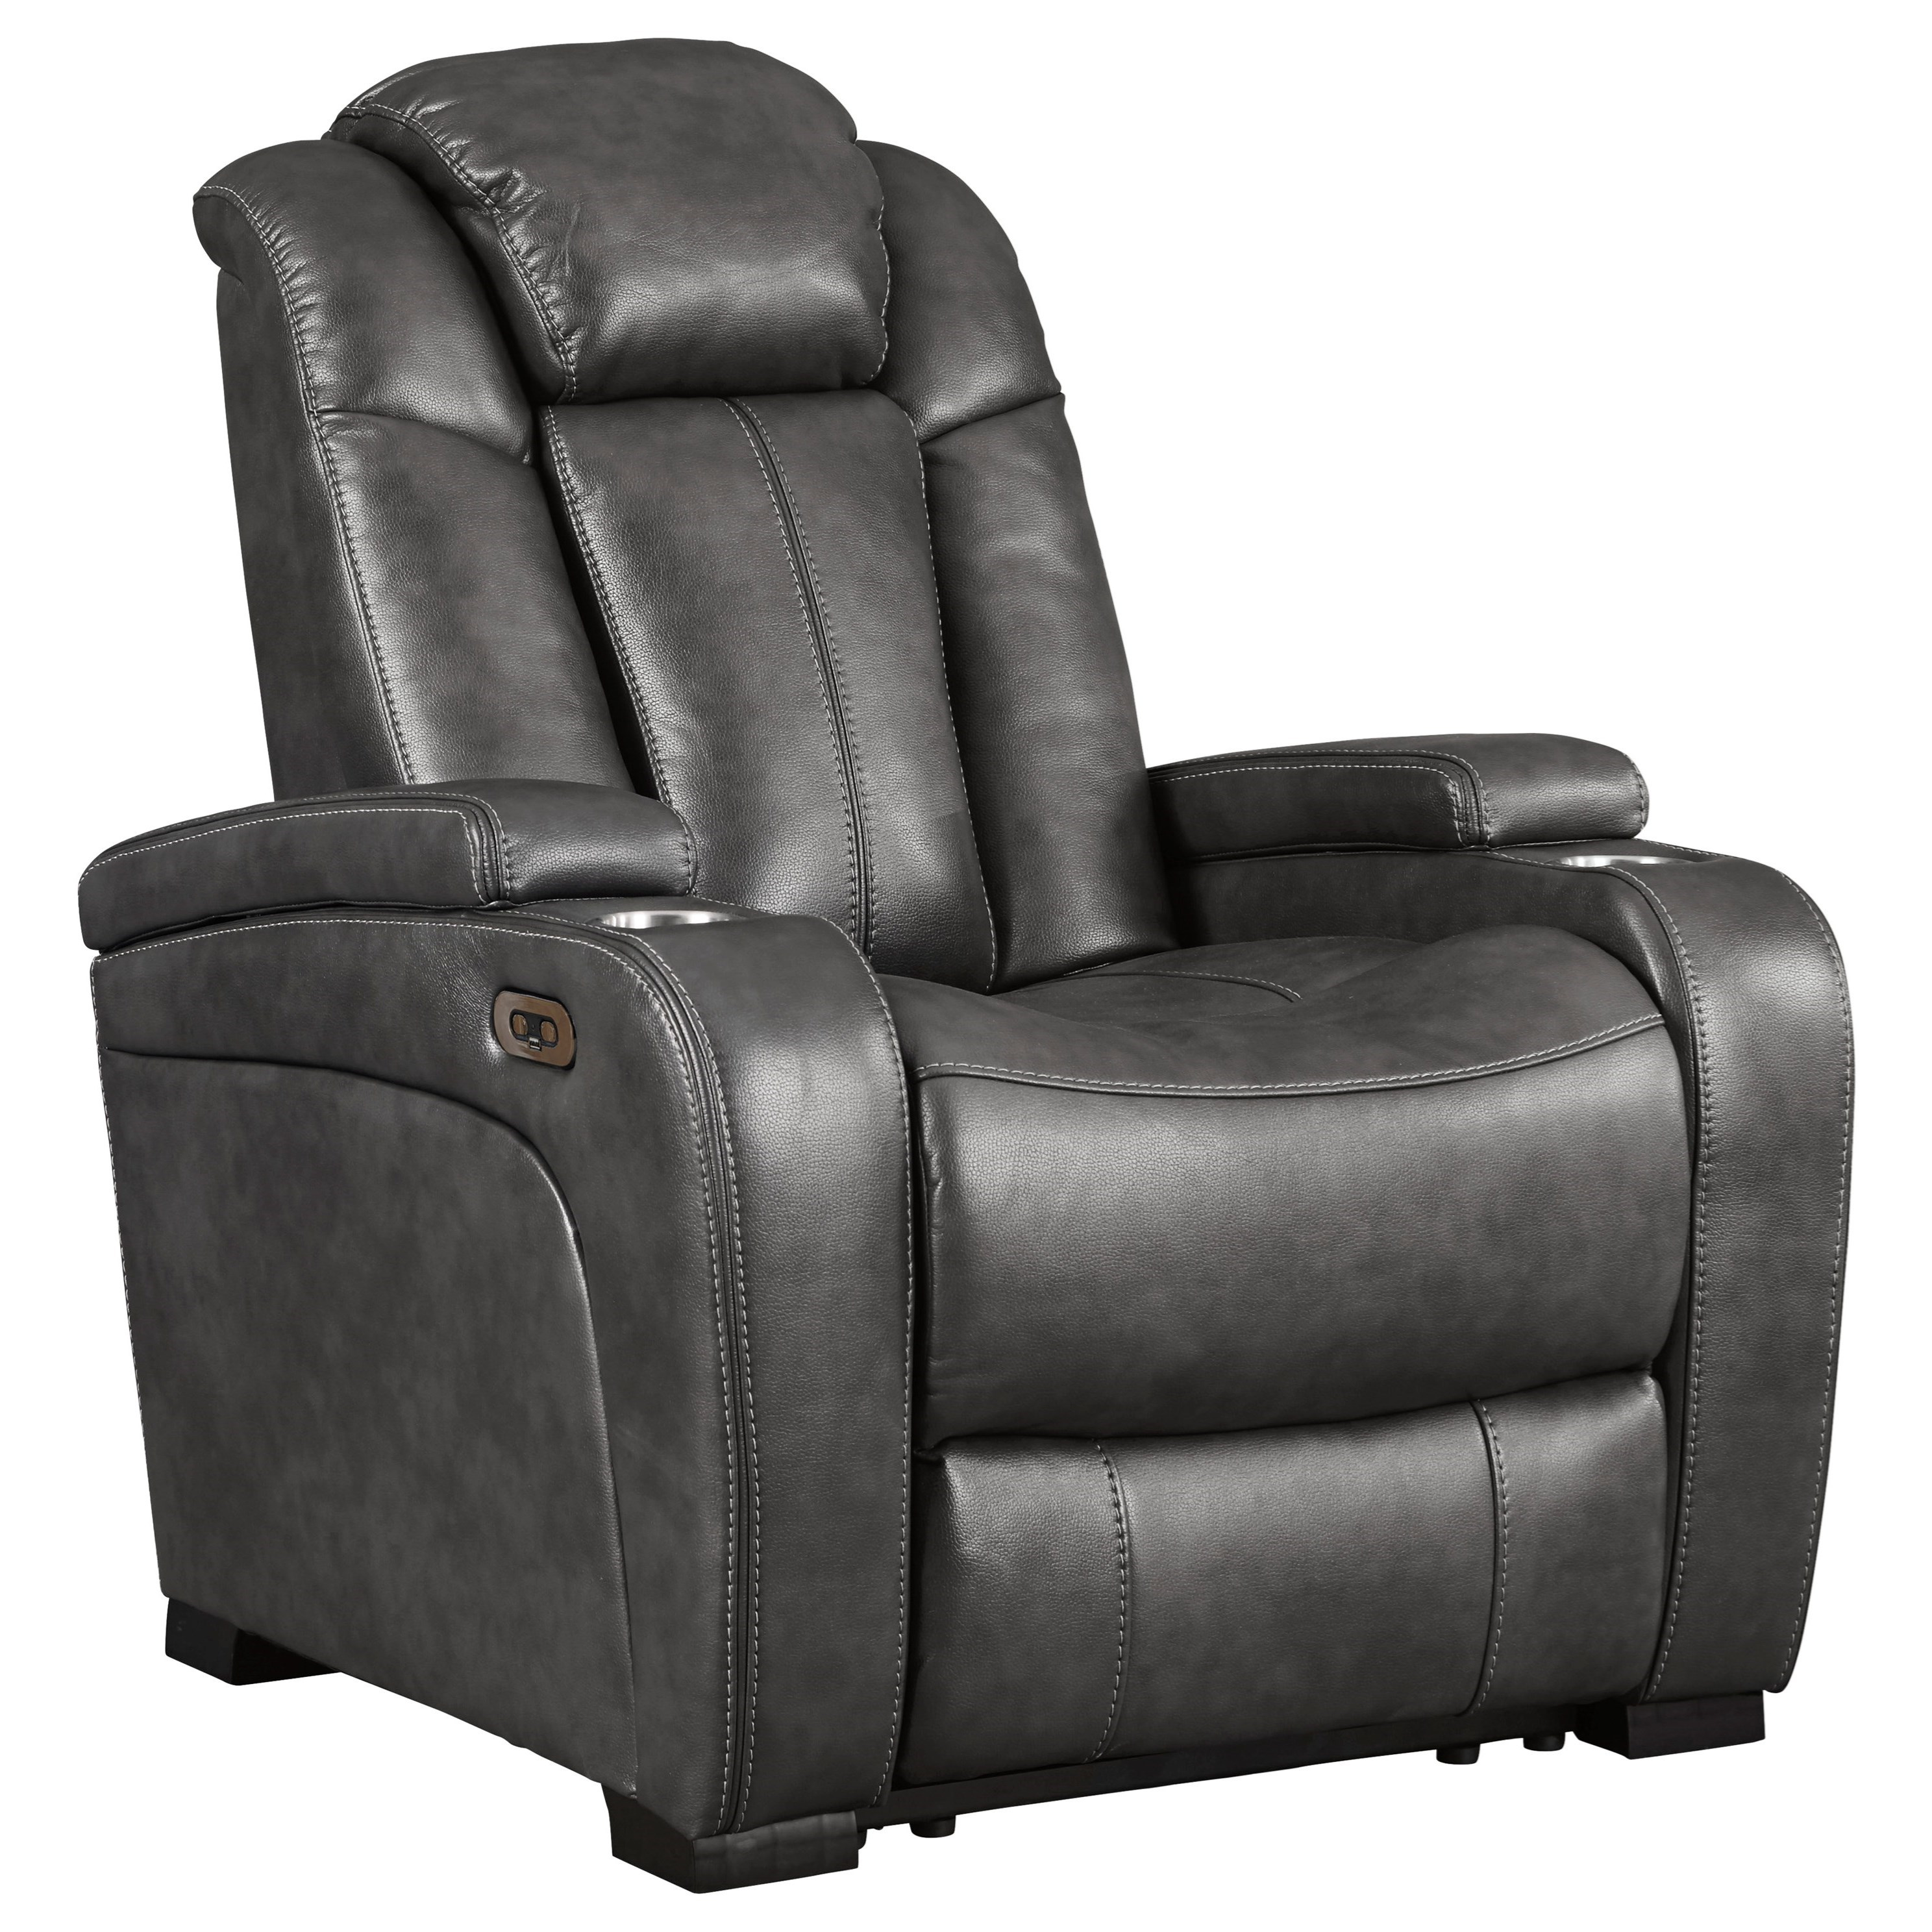 Turbulance Power Recliner w/ Adjustable Headrest by Signature Design by Ashley at Factory Direct Furniture